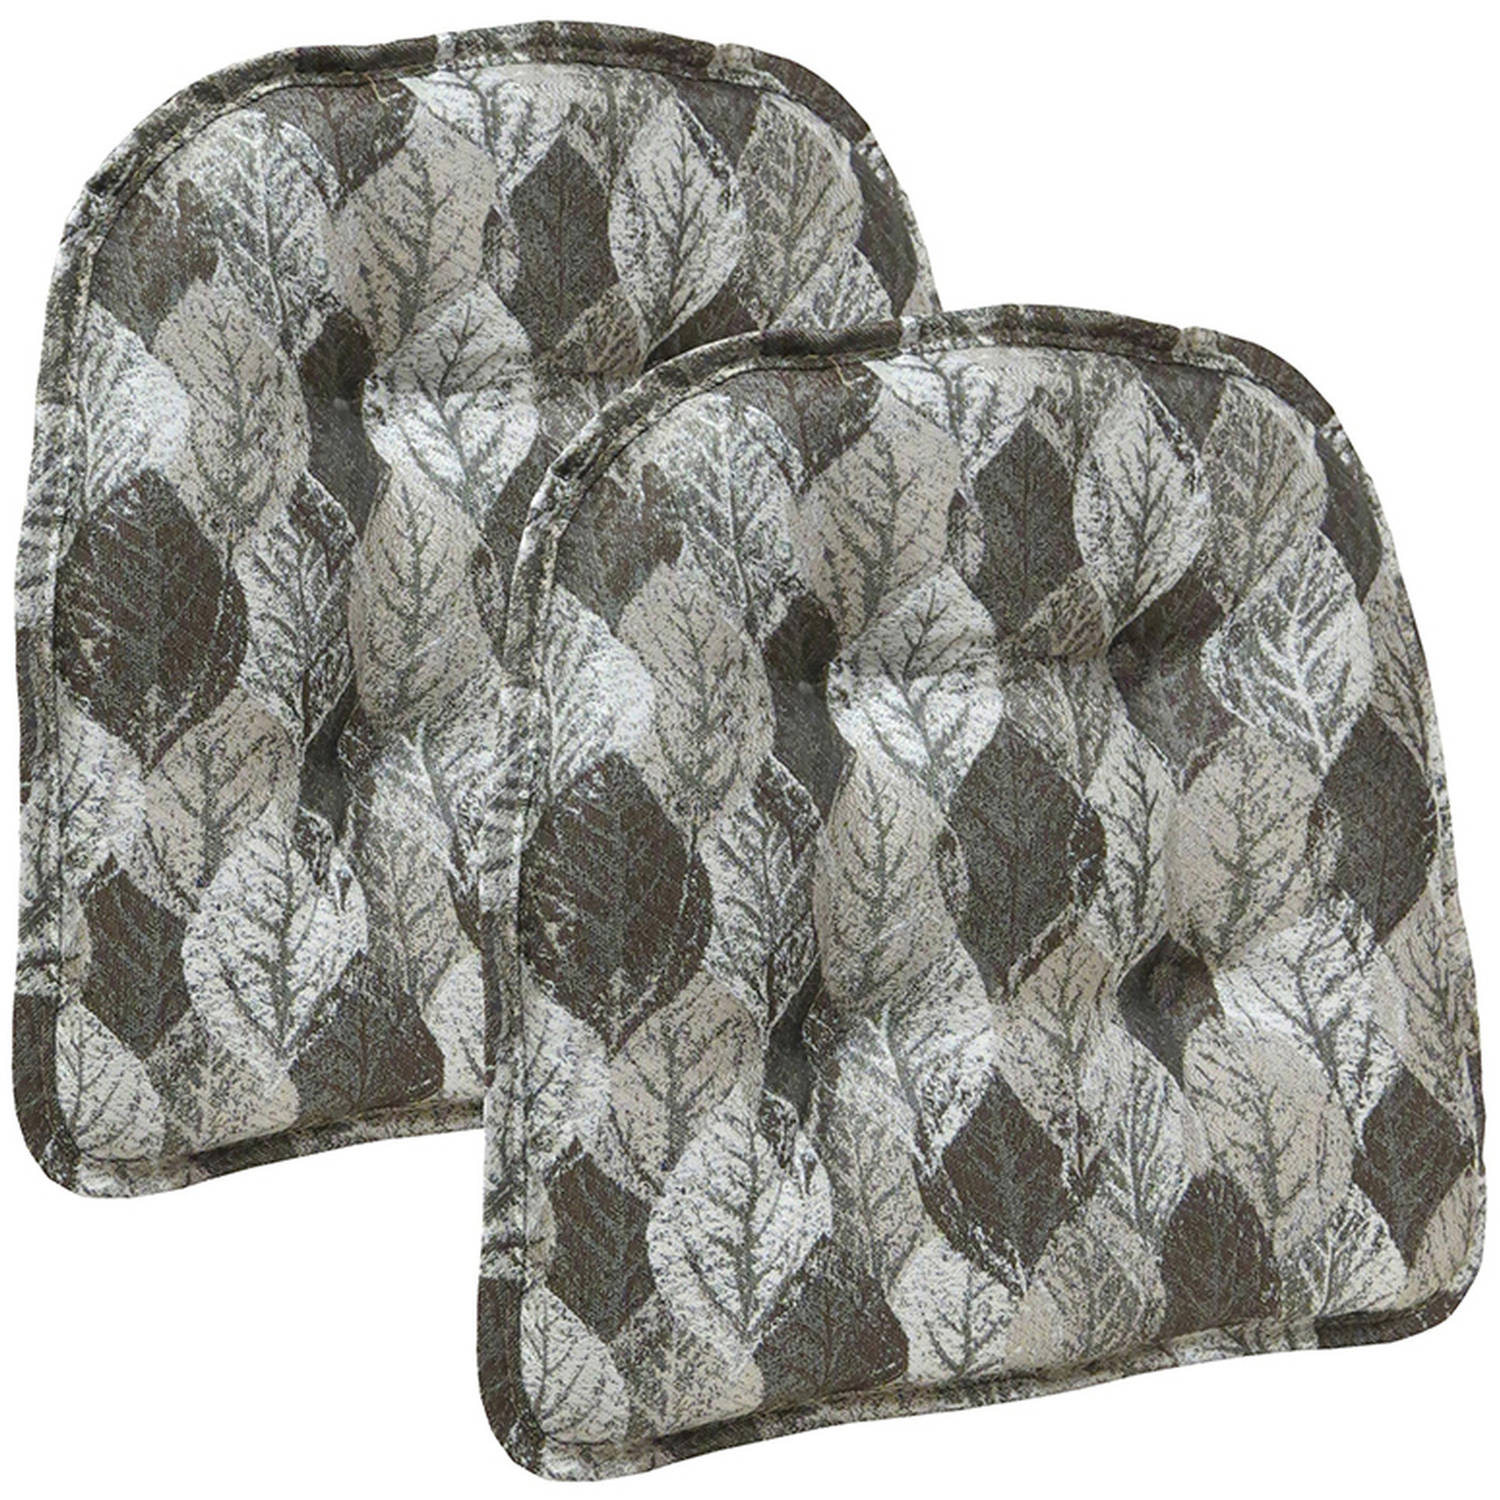 "Gripper Non-Slip 15"" x 16"" Overture Metallic Leaves Tufted Chair Cushions, Set of 2"